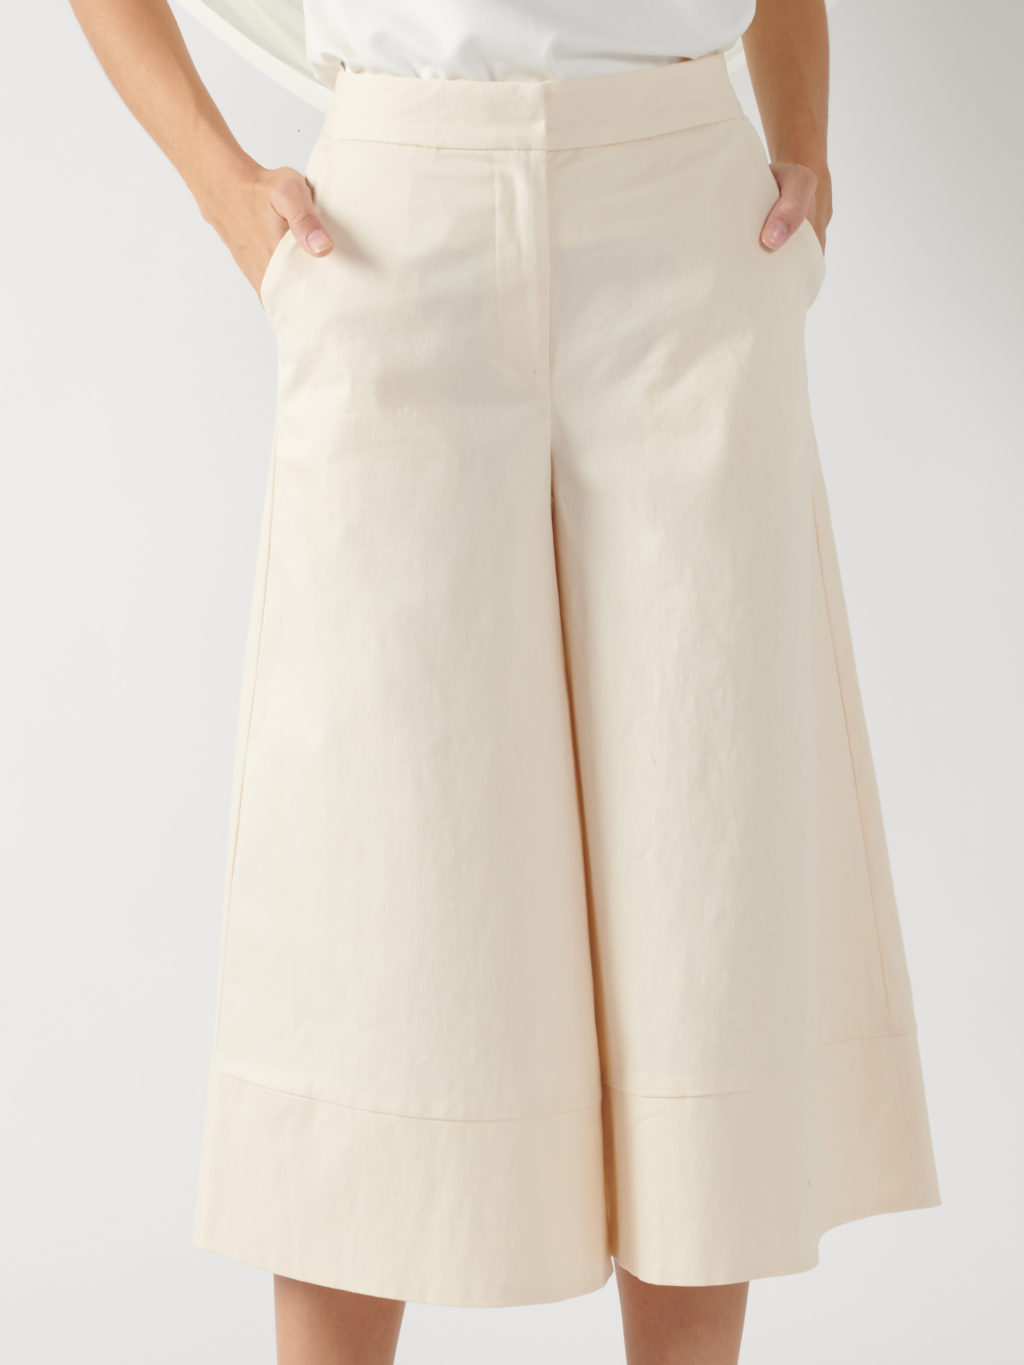 wide-leg trousers in light beige